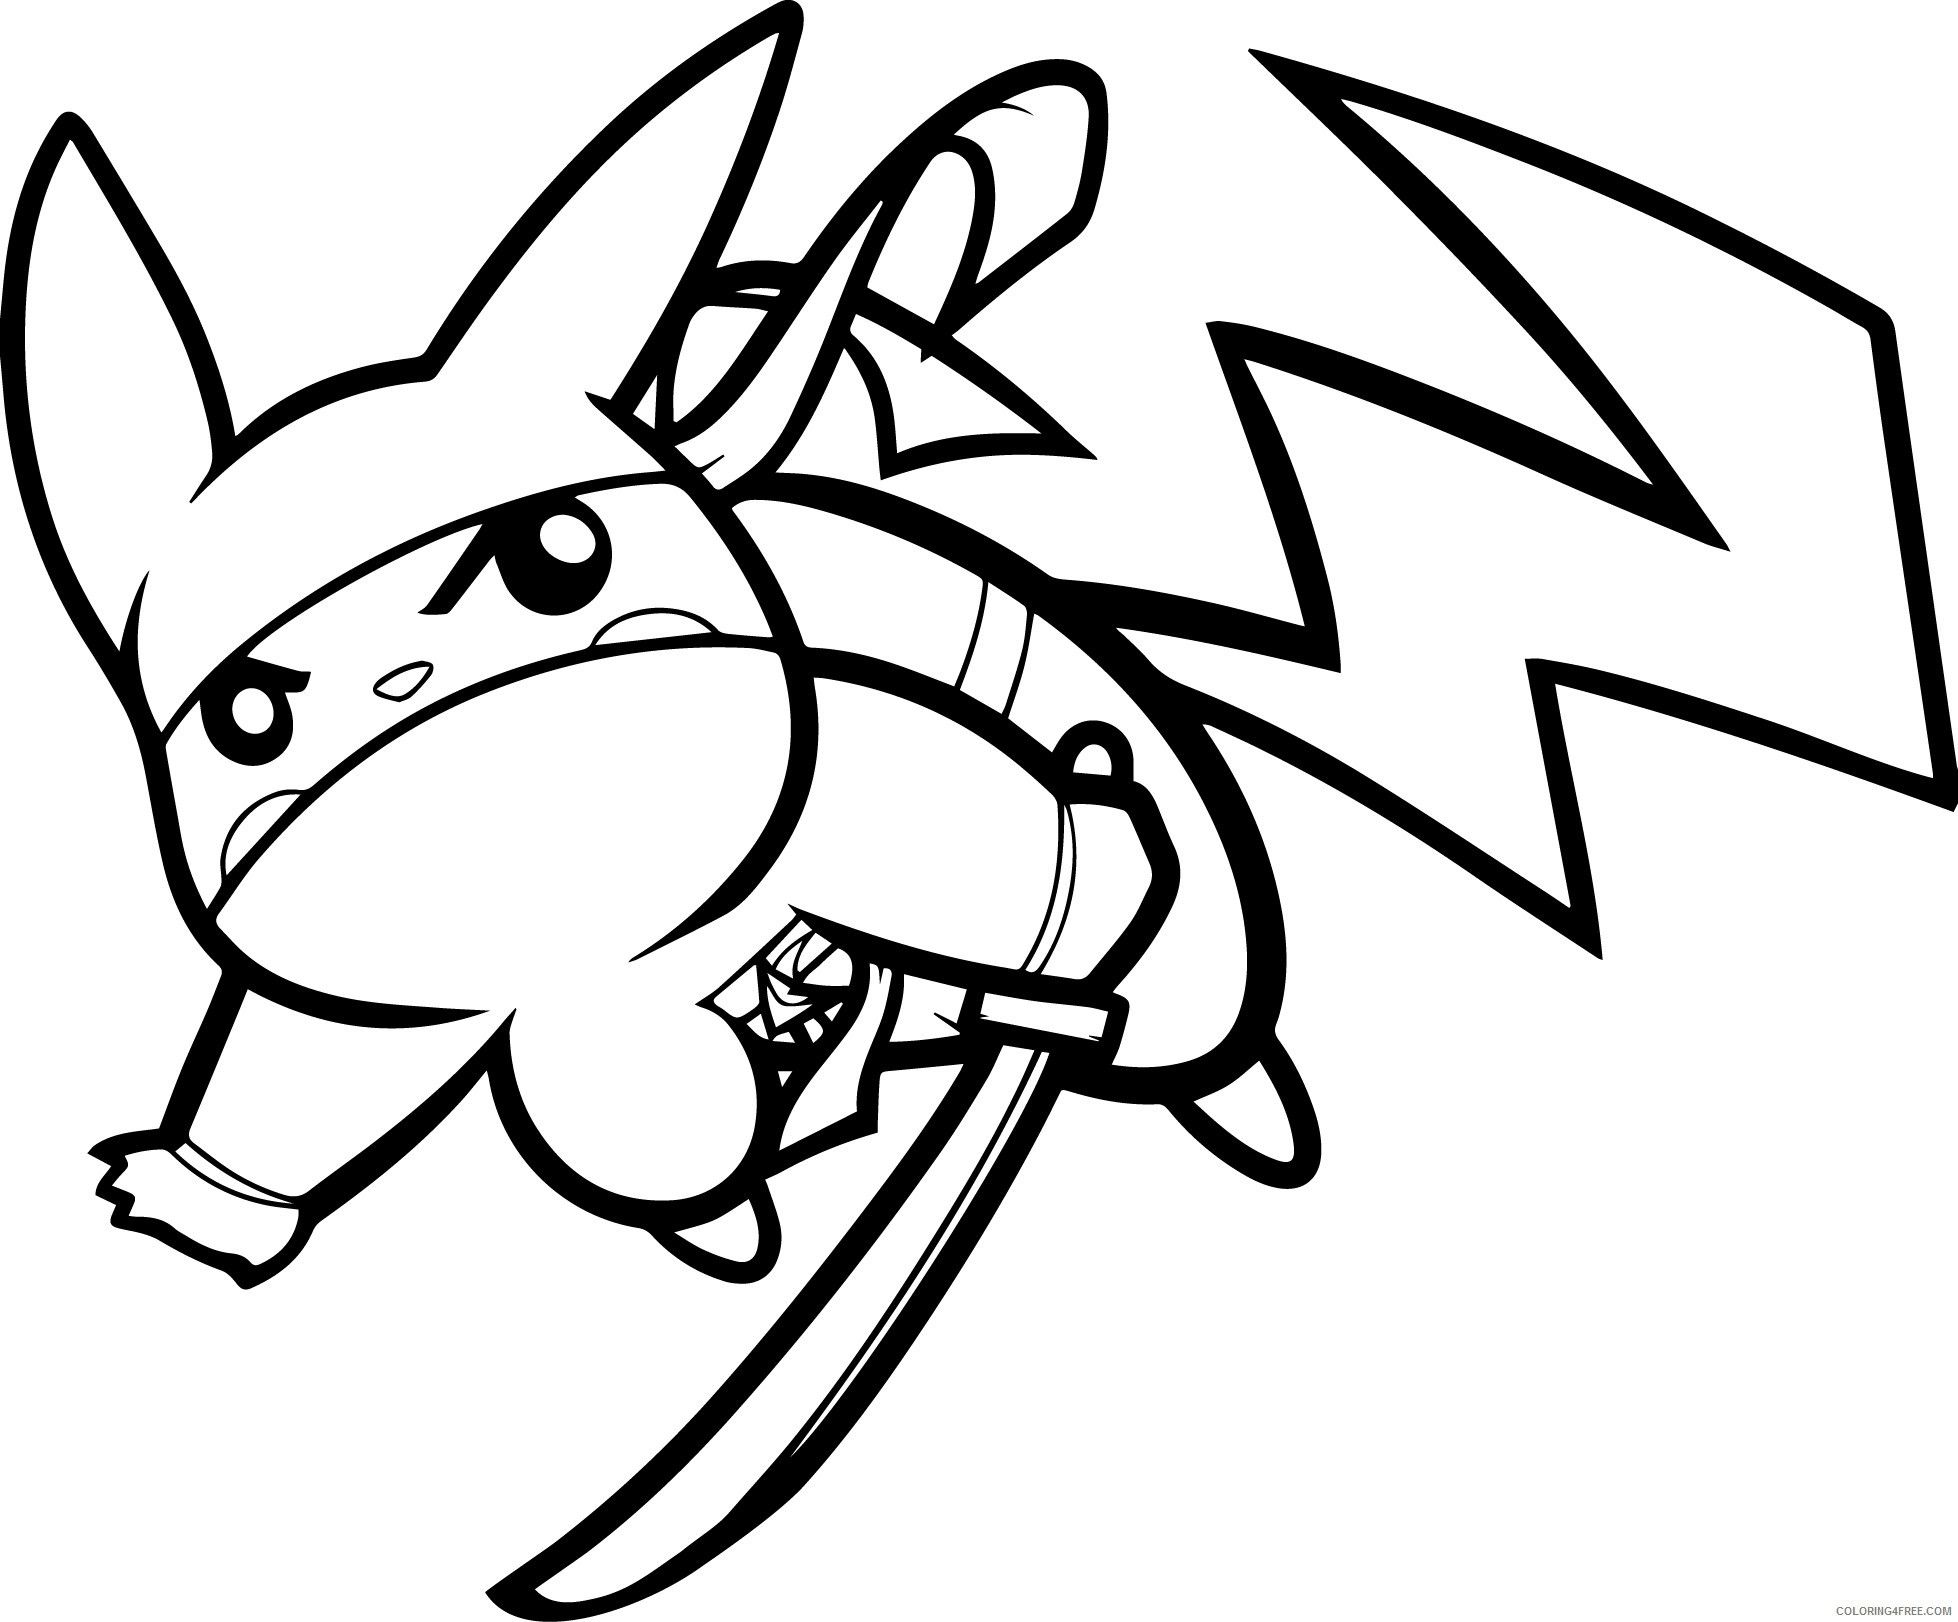 Pikachu Ninja Coloring Page – From the thousands of photos ...